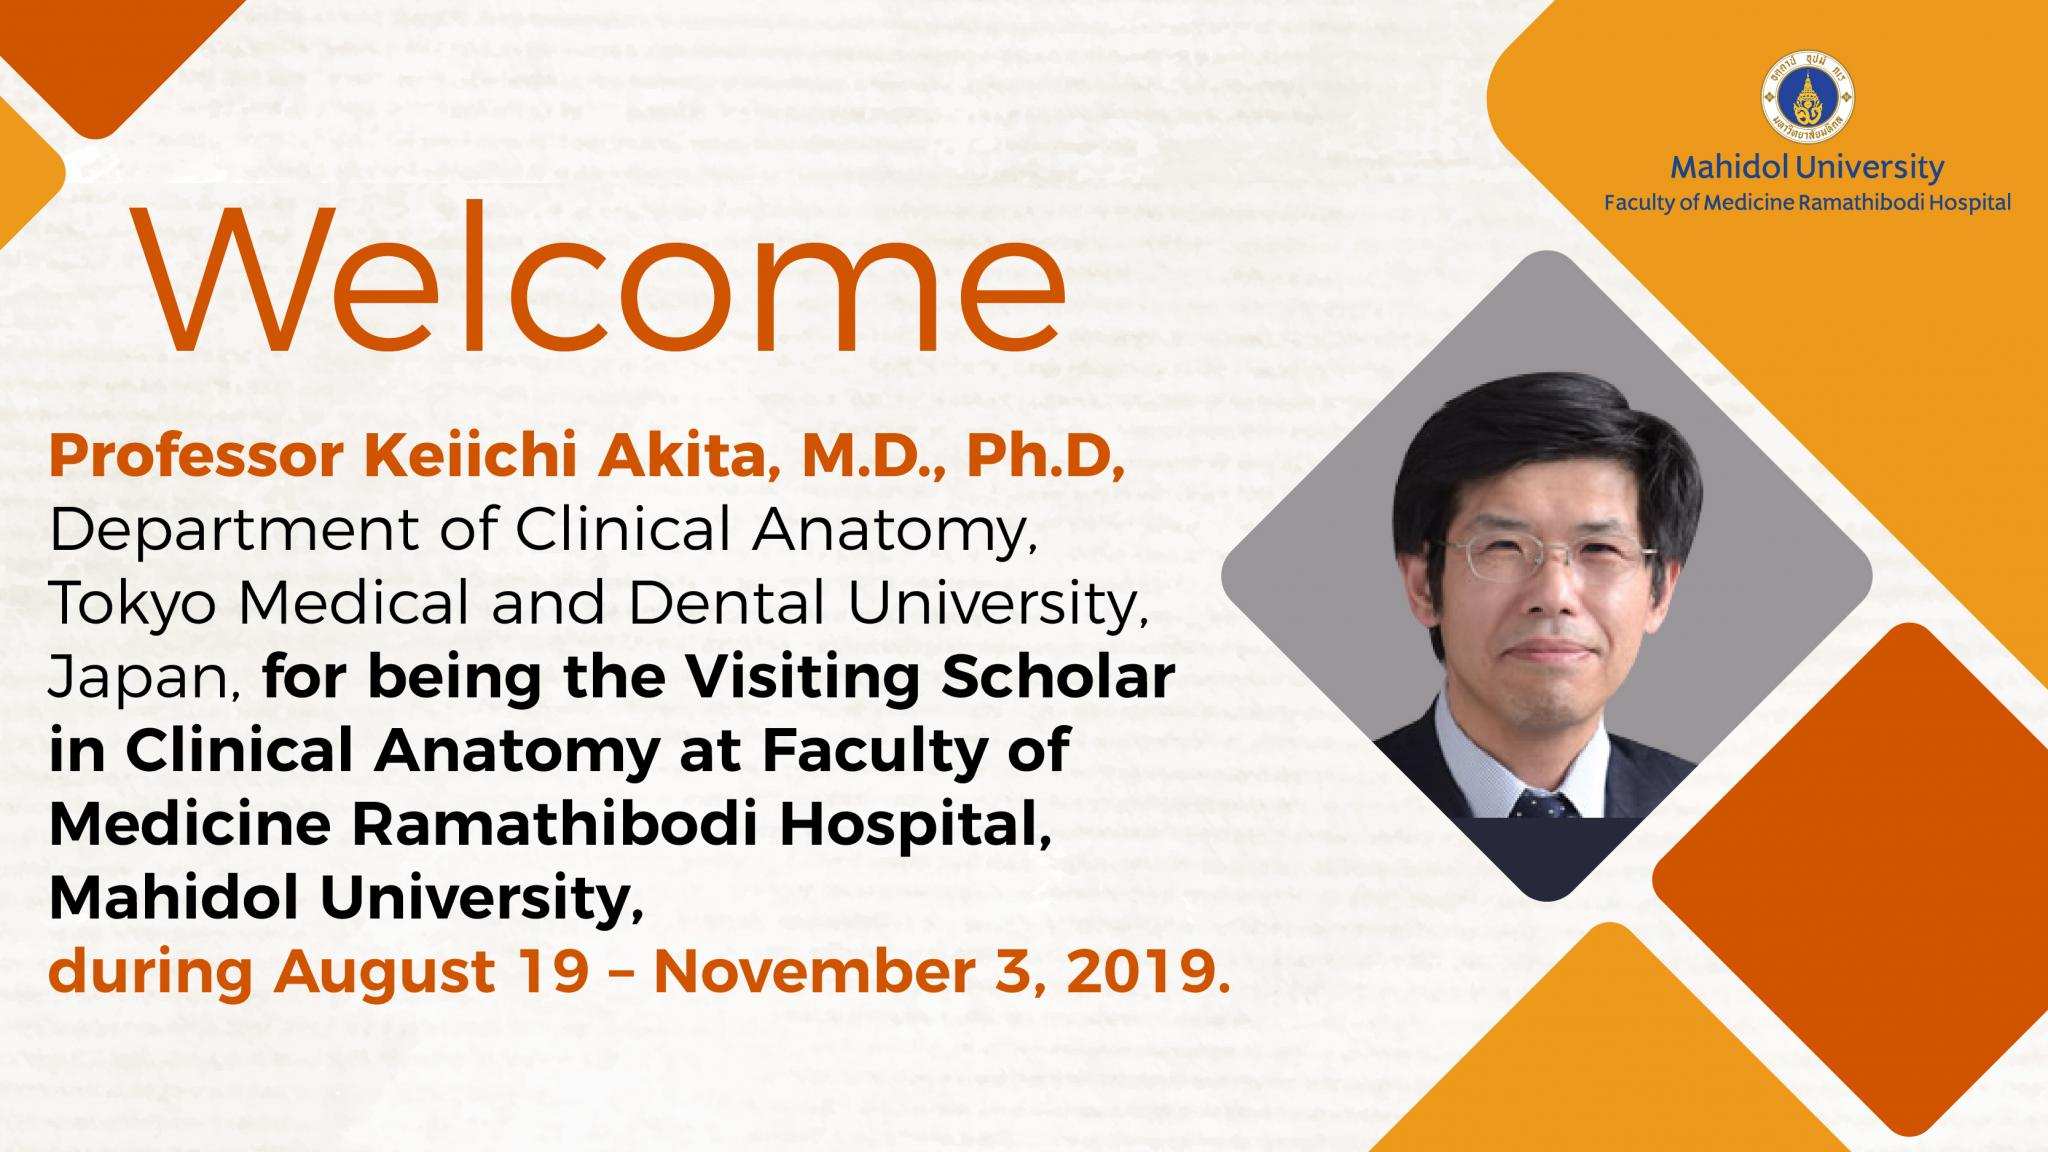 Welcome Professor Keiichi Akita, TMDU, Japan, for being the Visiting Scholar